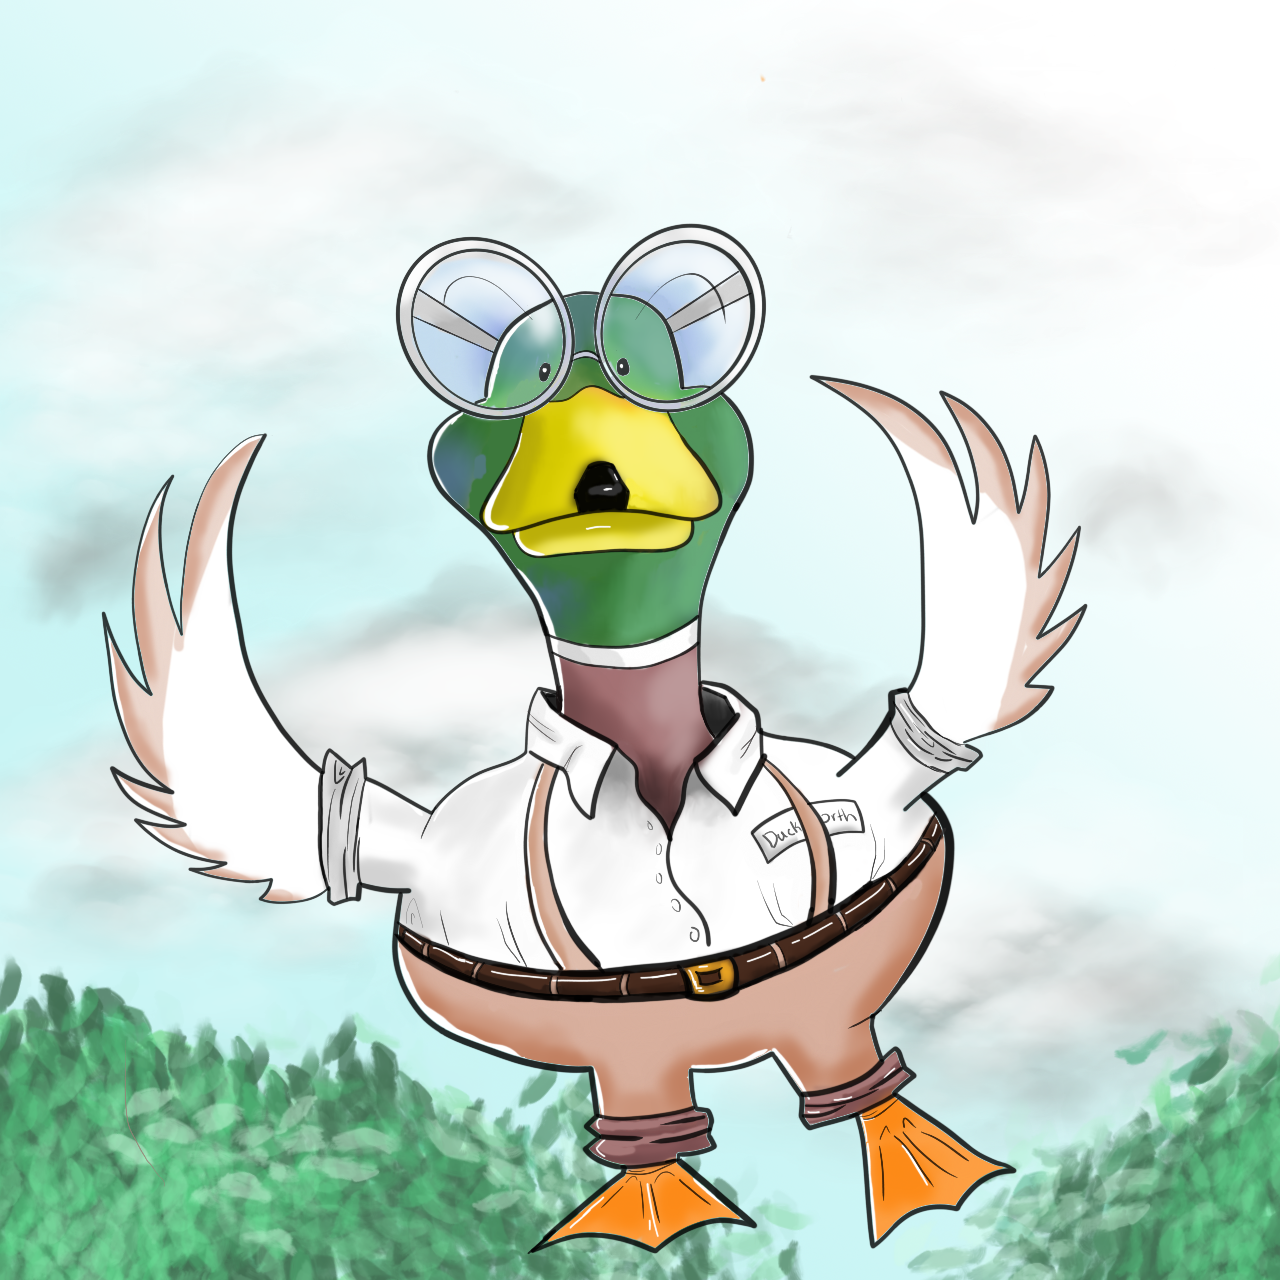 Character Ducksworth from my upcoming book Quizzy